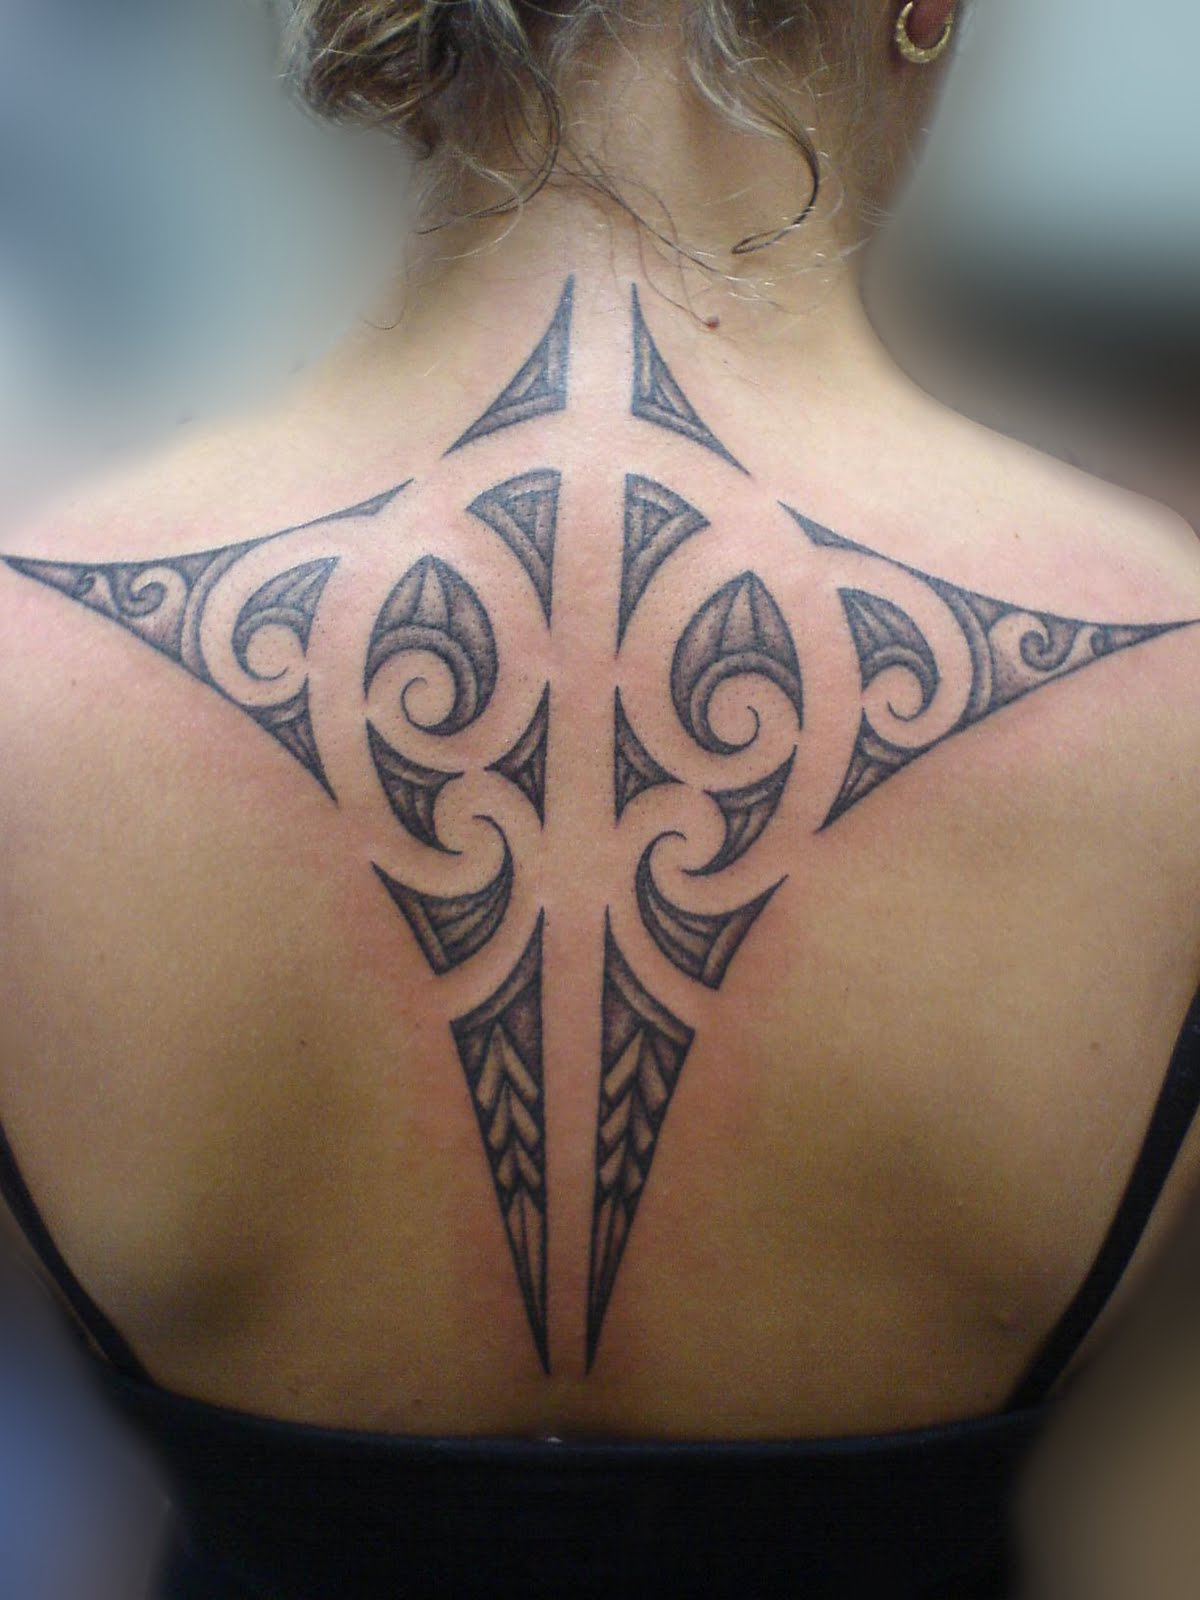 body art world tattoos maori tattoo art and traditional maori tattoos. Black Bedroom Furniture Sets. Home Design Ideas